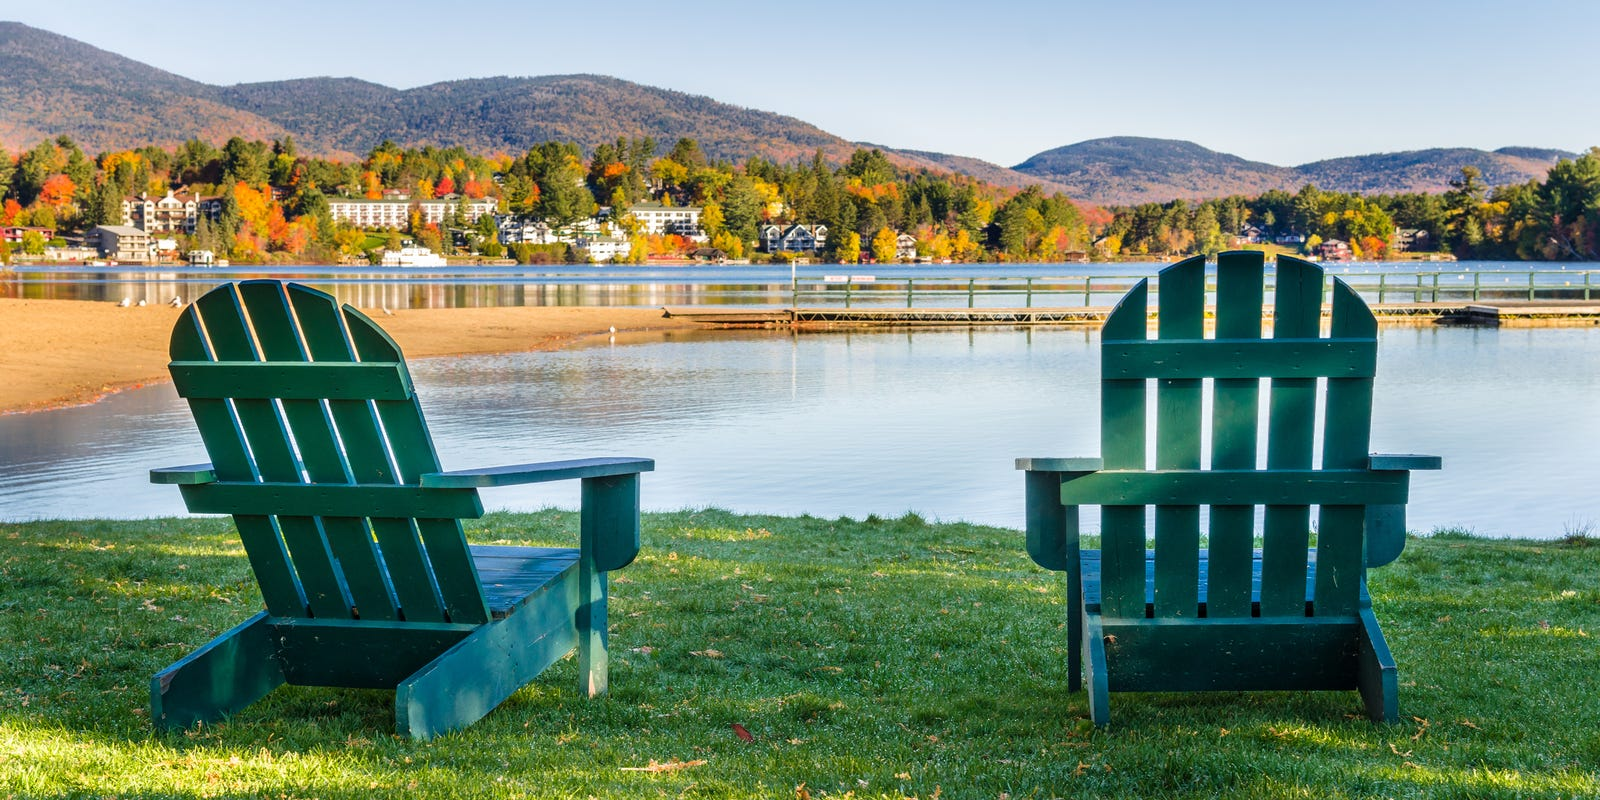 The 10 best lake towns in North America